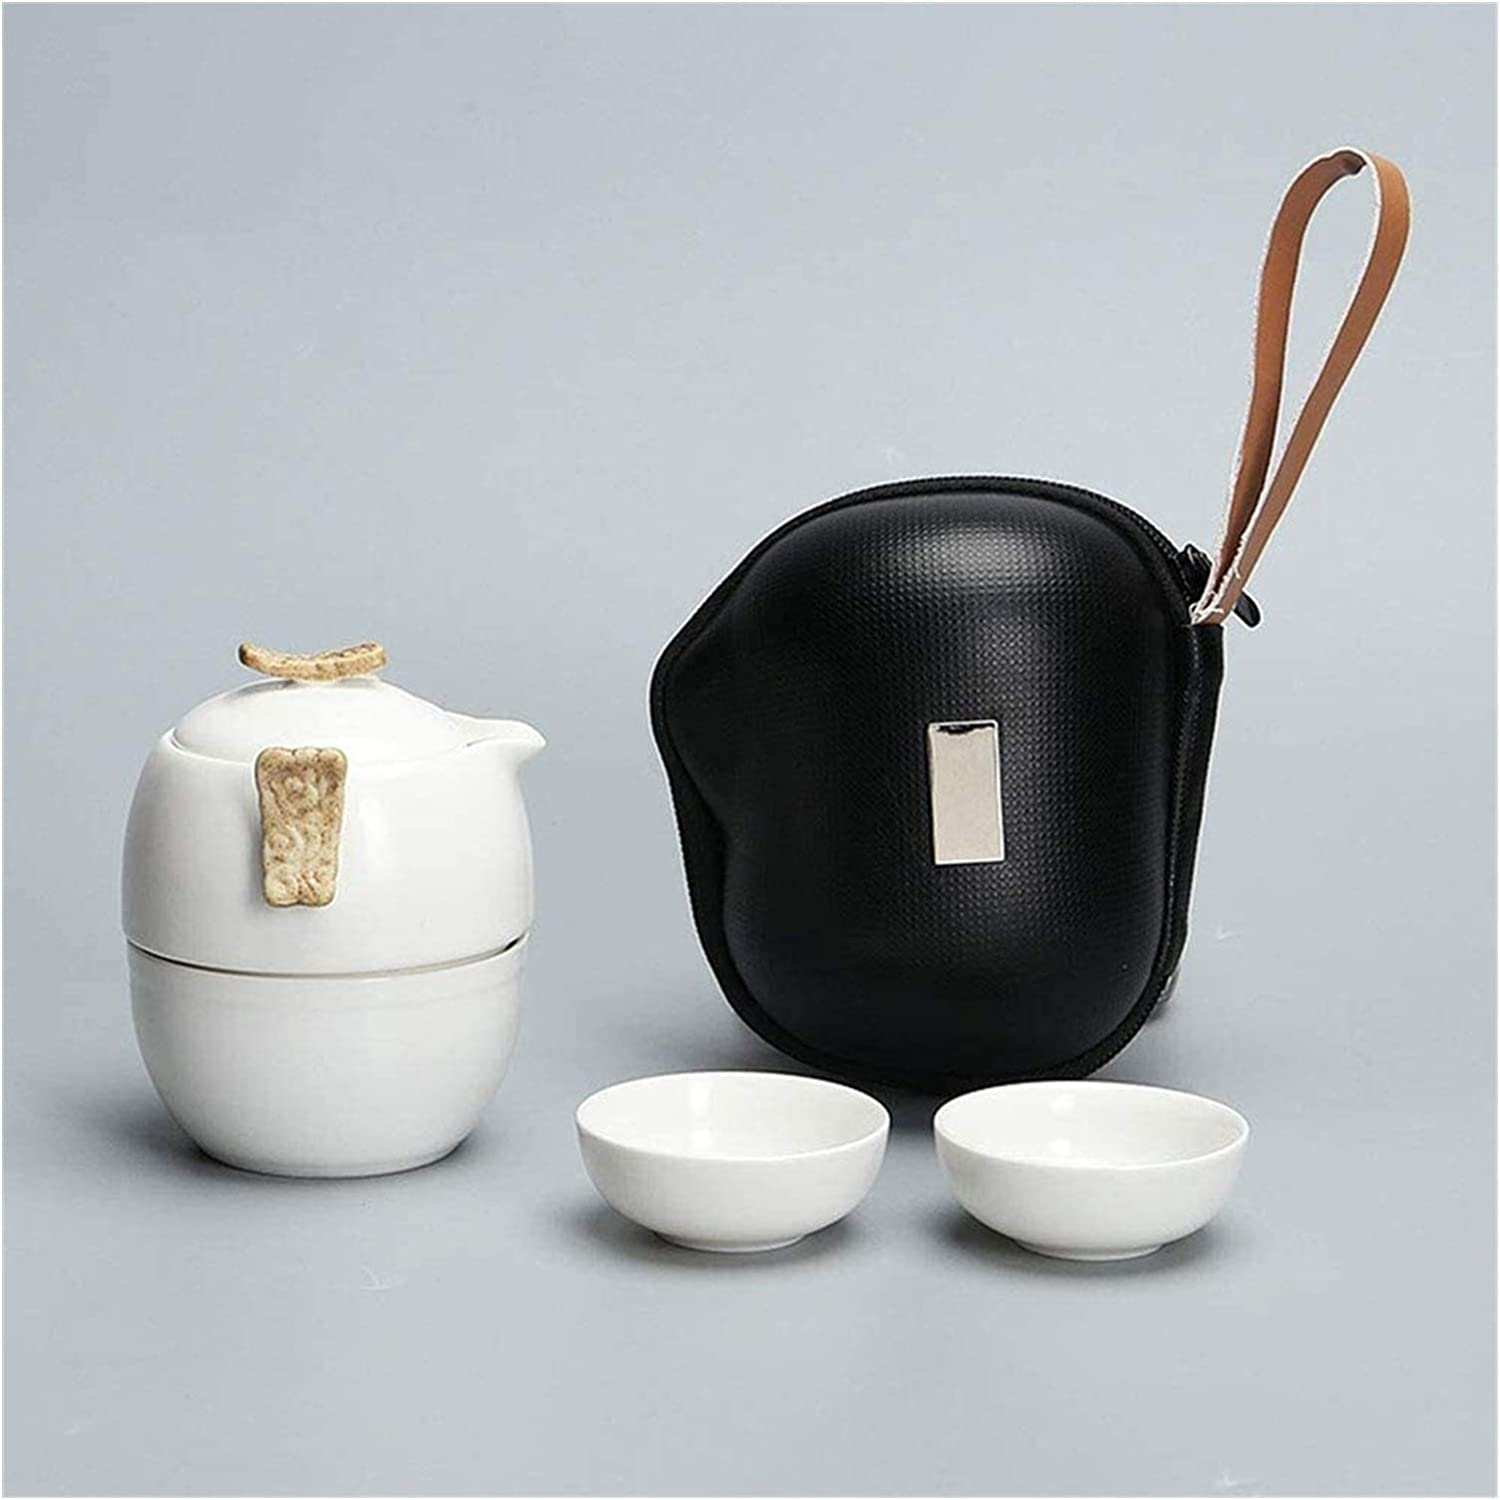 Tea Cup Set Coffee Cups Travel Fu Pot Kung 1 Outlet sale ! Super beauty product restock quality top! feature Teapot